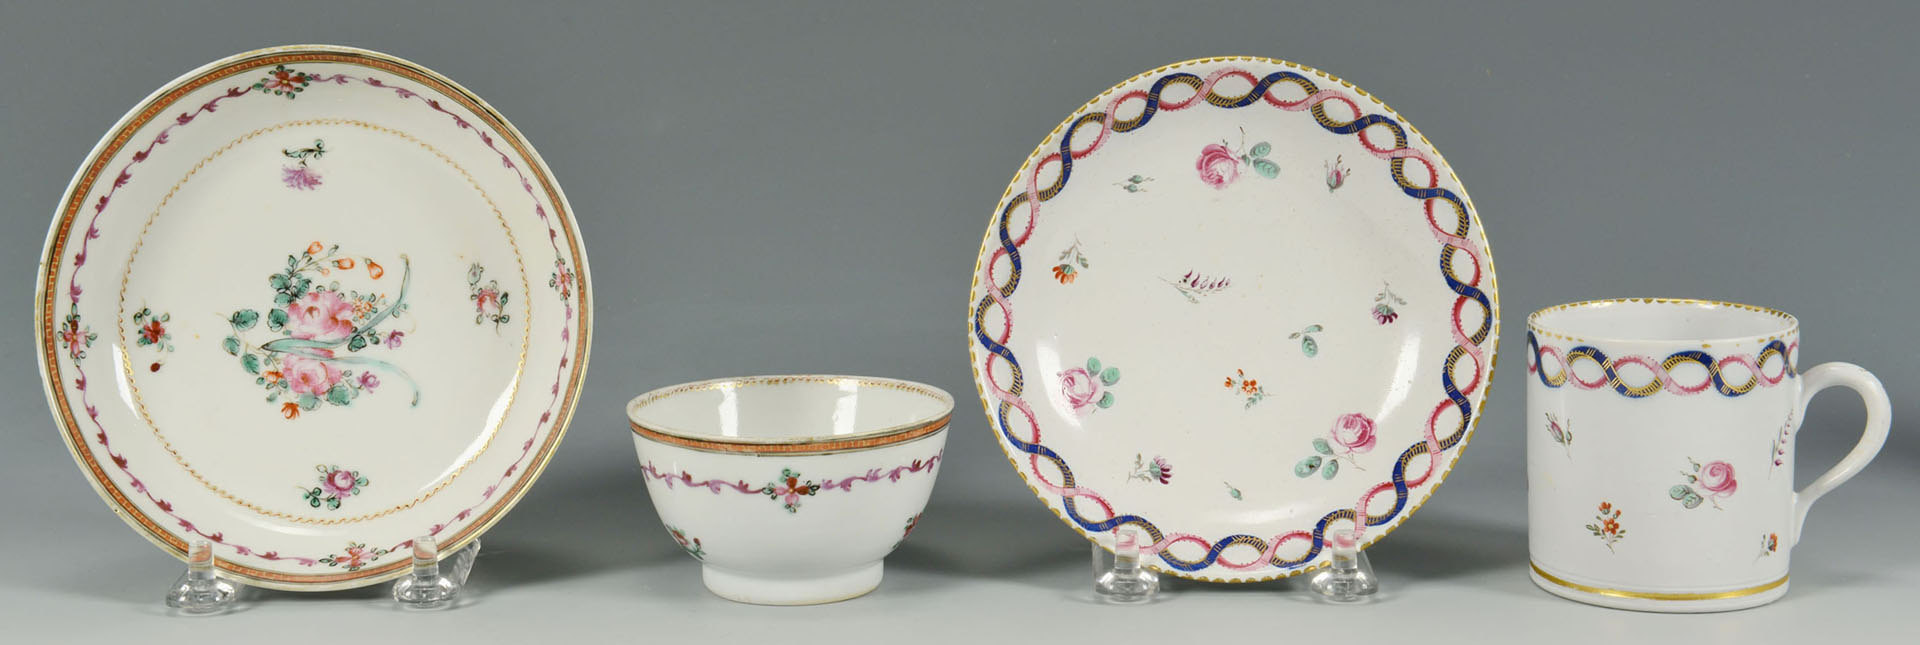 Lot 572: 8 cups and saucers, 18th century